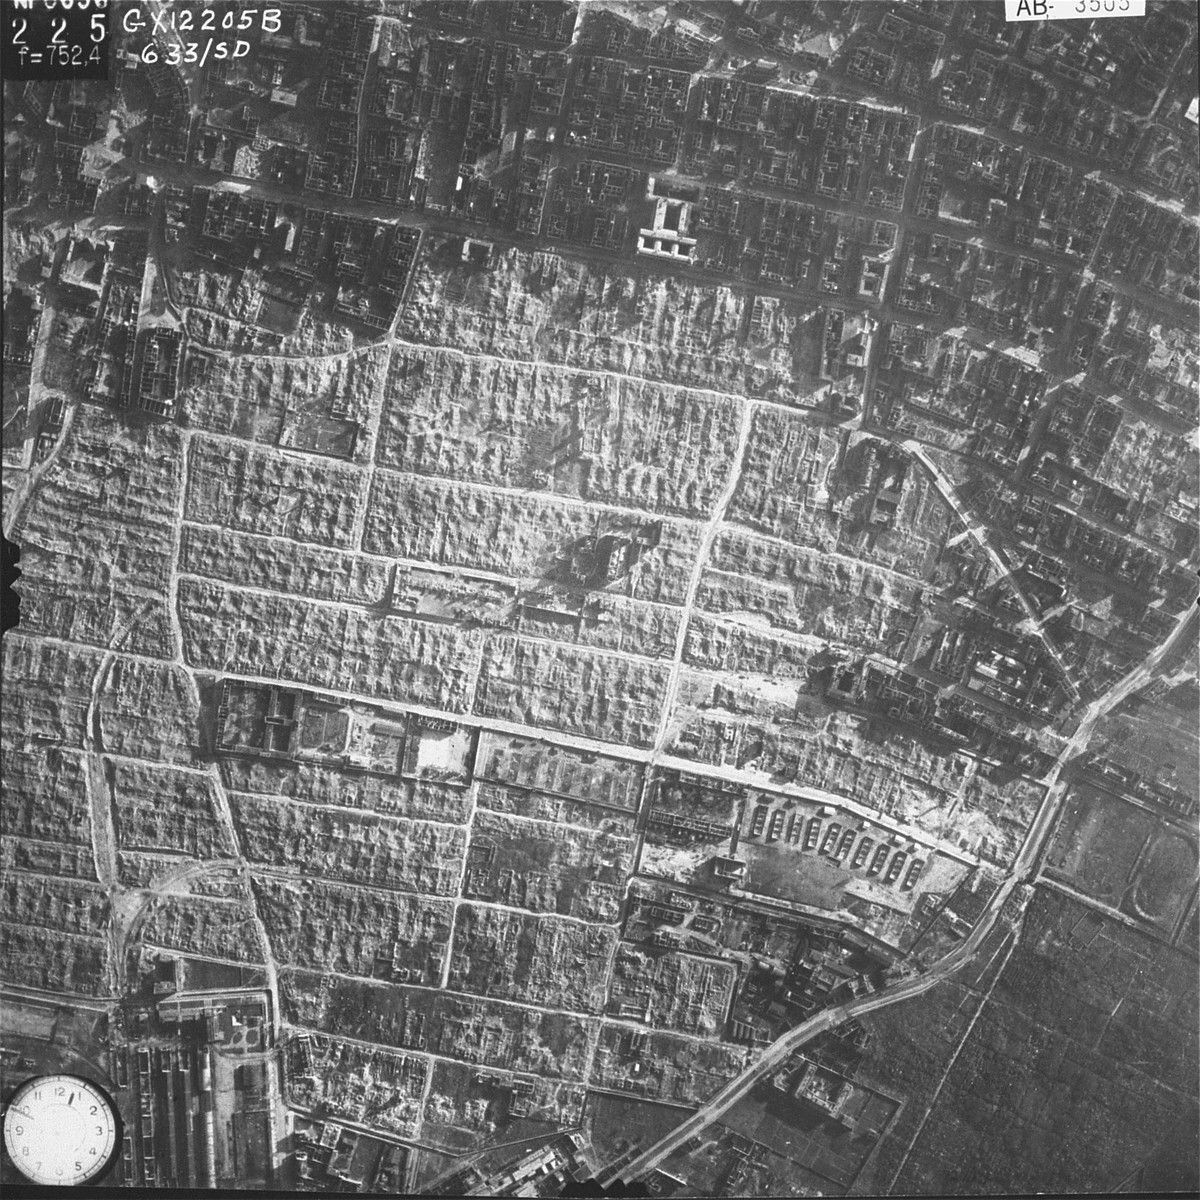 An aerial photograph showing the destruction of the Warsaw Ghetto after the uprising.